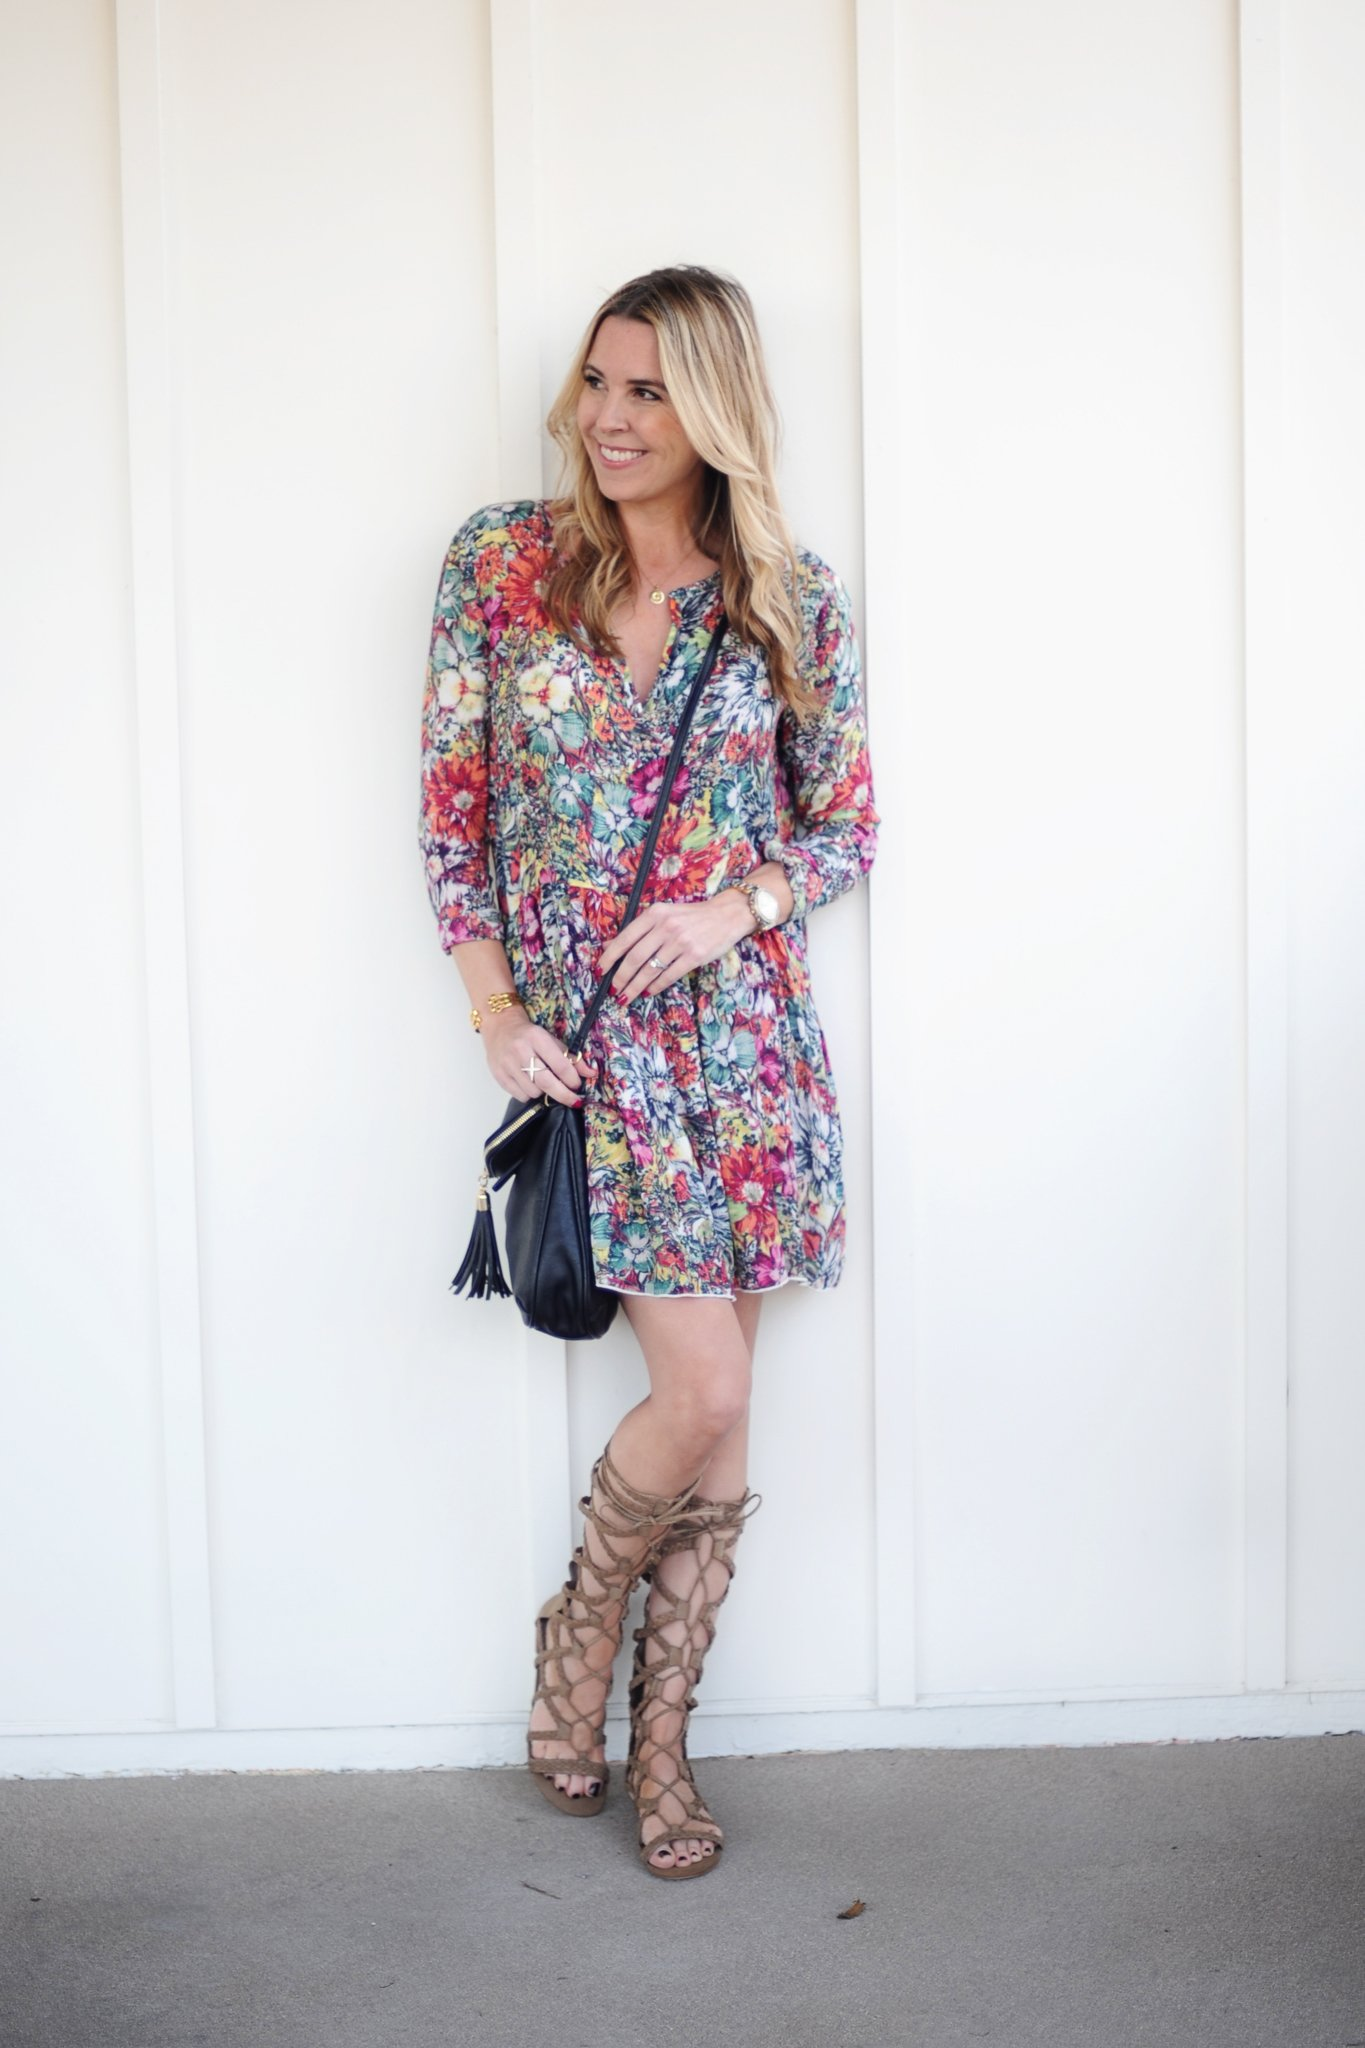 Boho Look List Of Synonyms And Antonyms Of The Word Boho Look